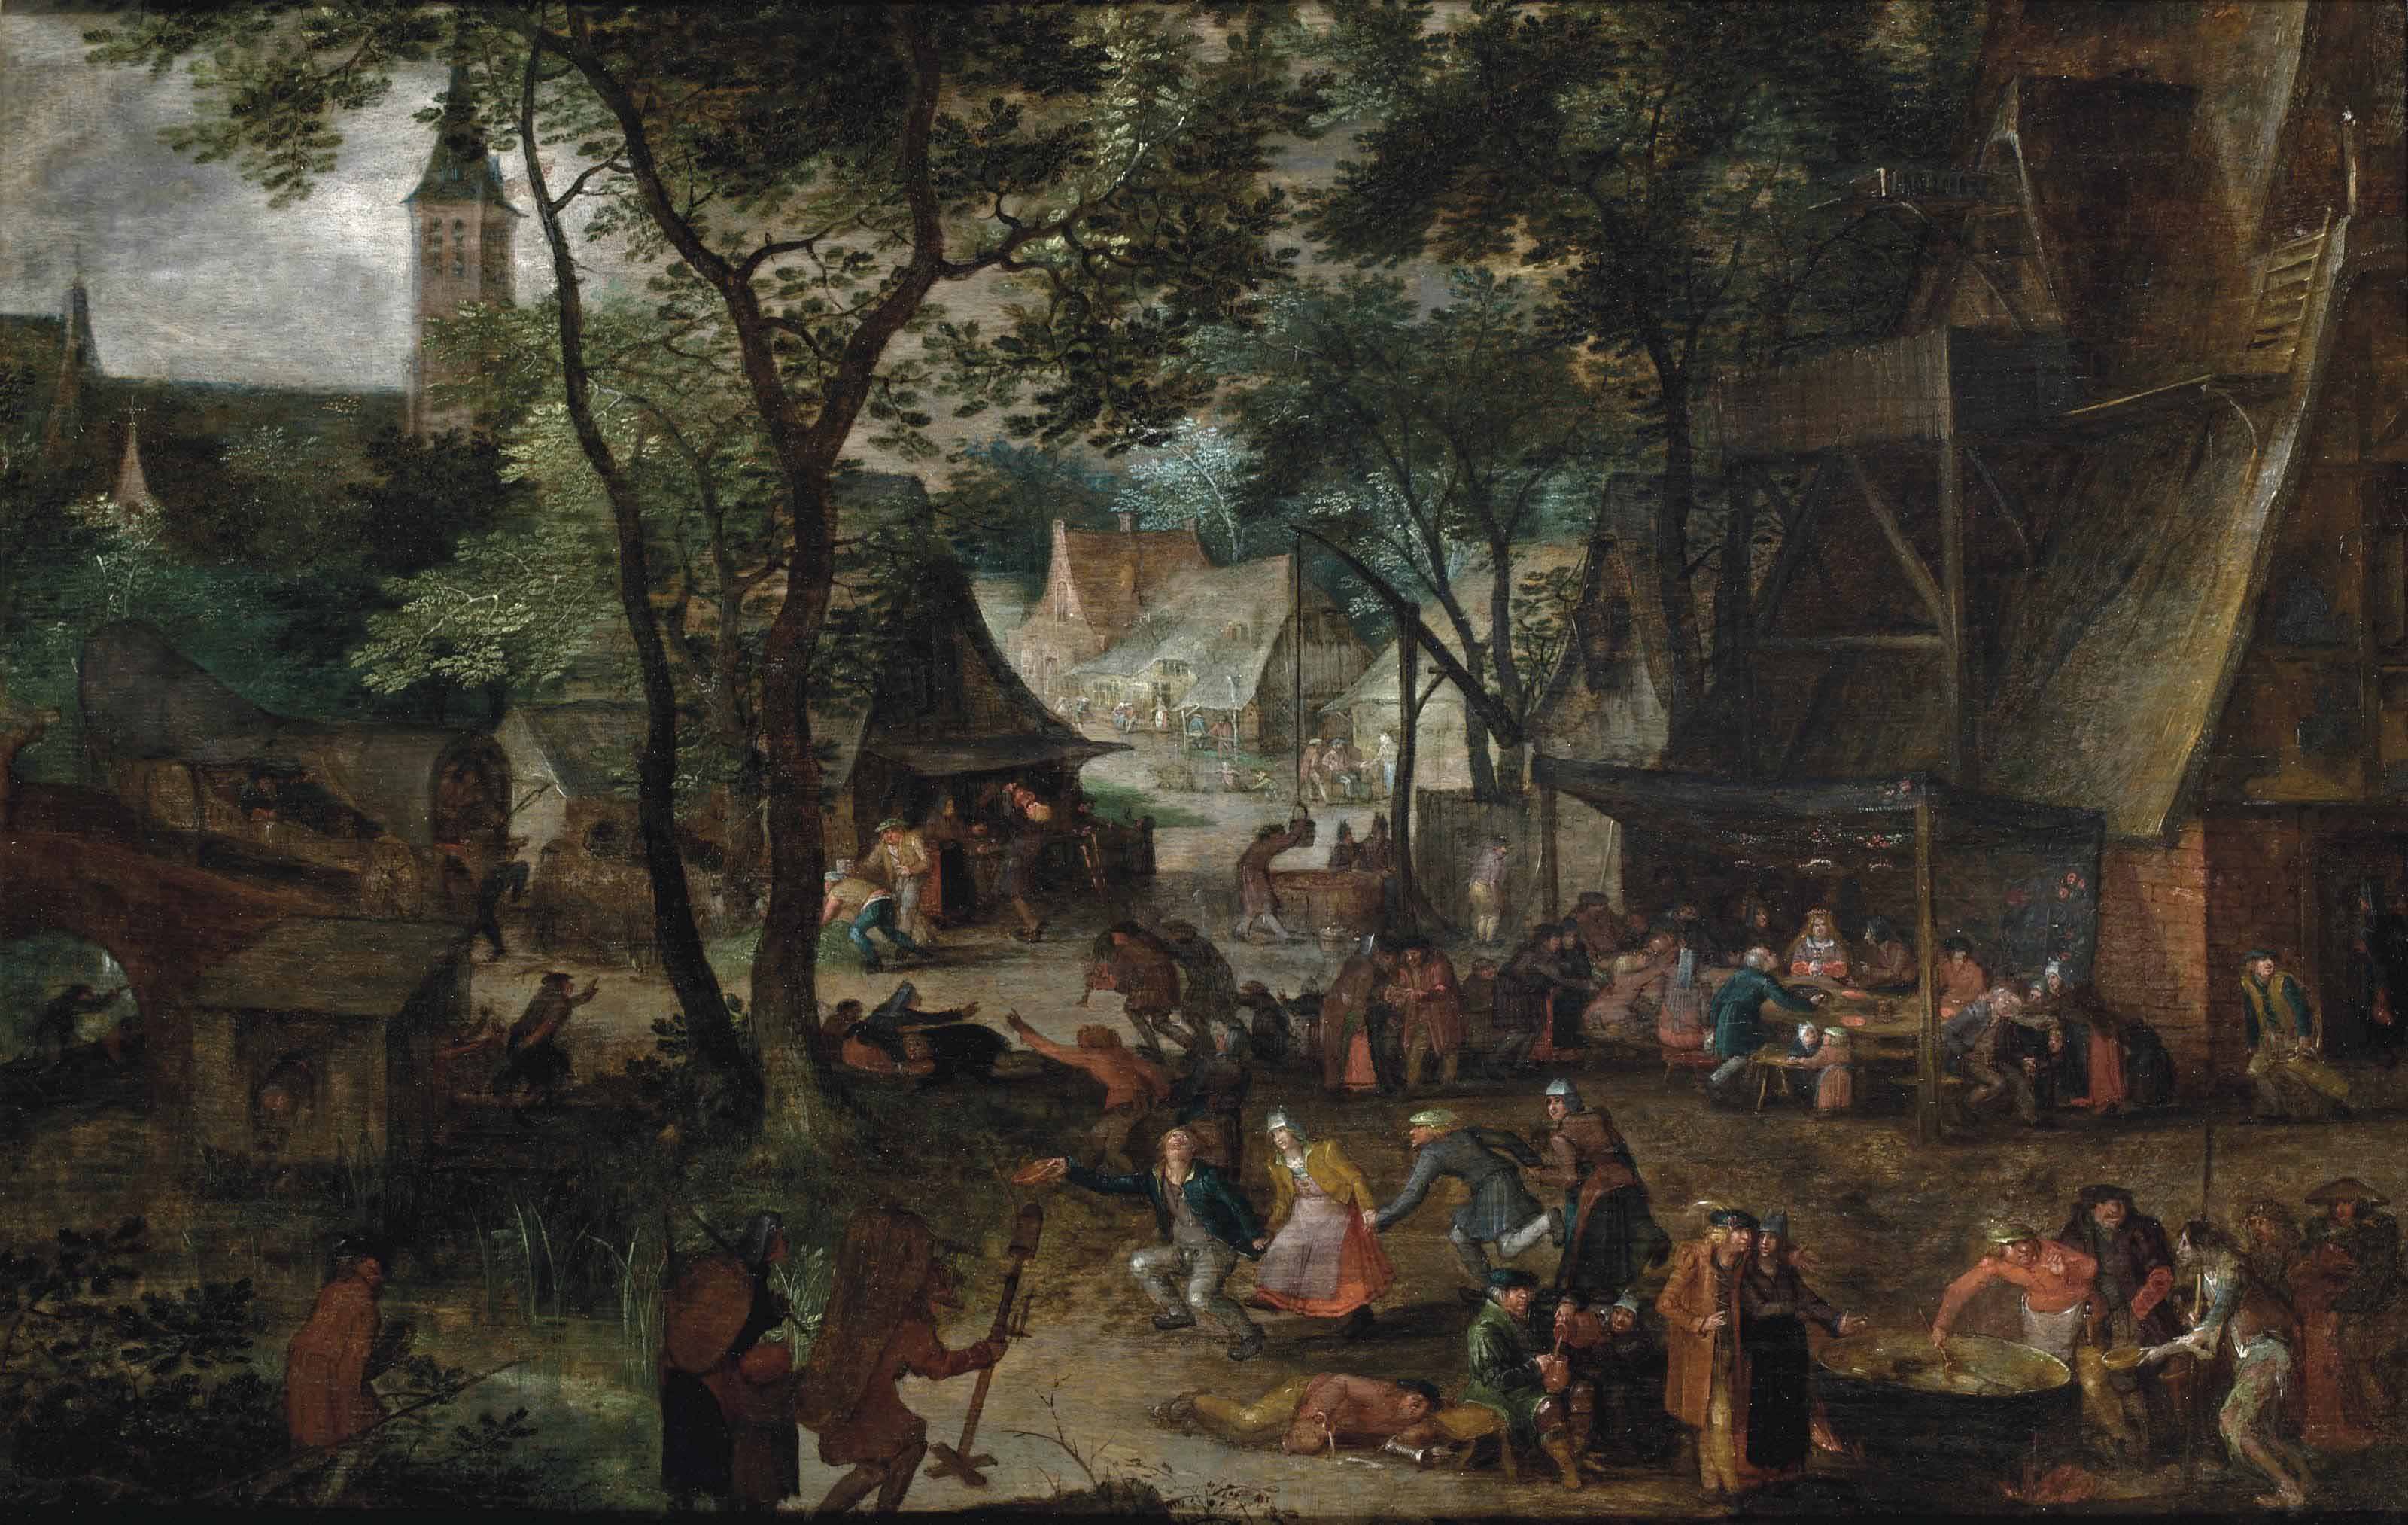 A wedding banquet in a village with peasants making merry